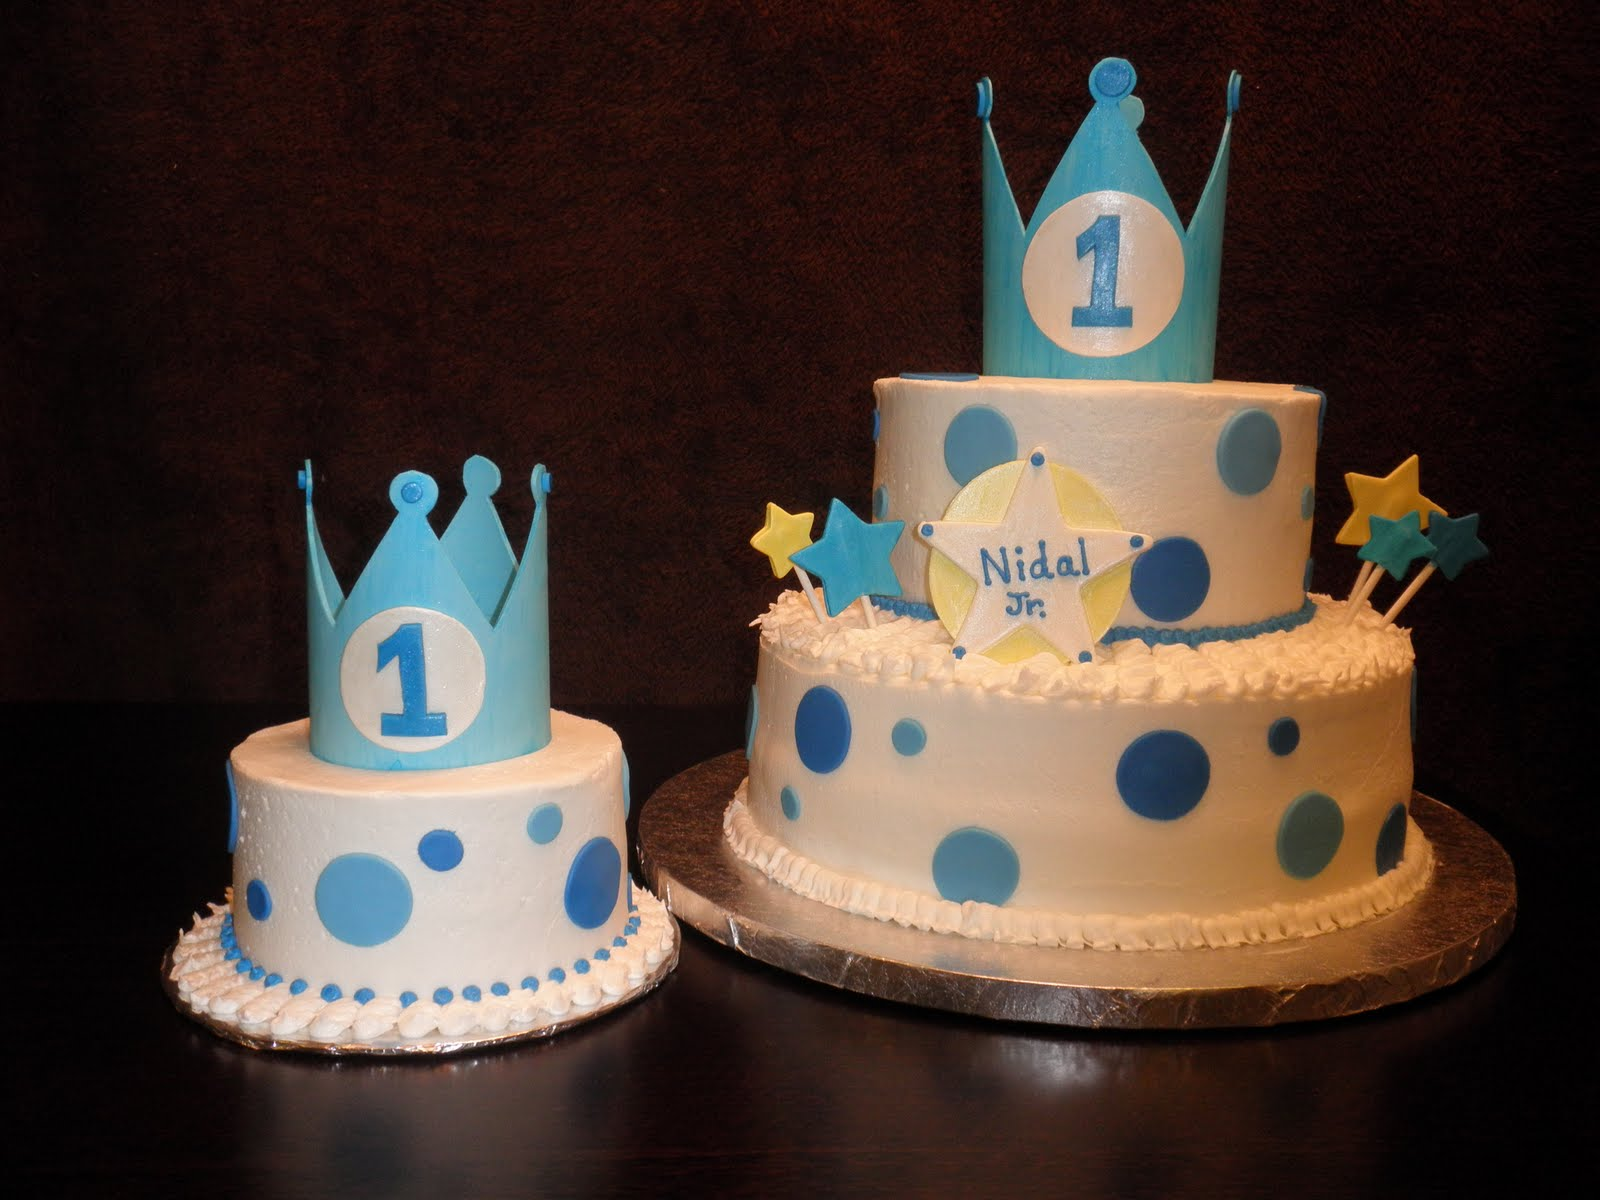 Bday Cake Images For Baby Boy : Blissful Bites By Brandy: Baby s 1st Birthday